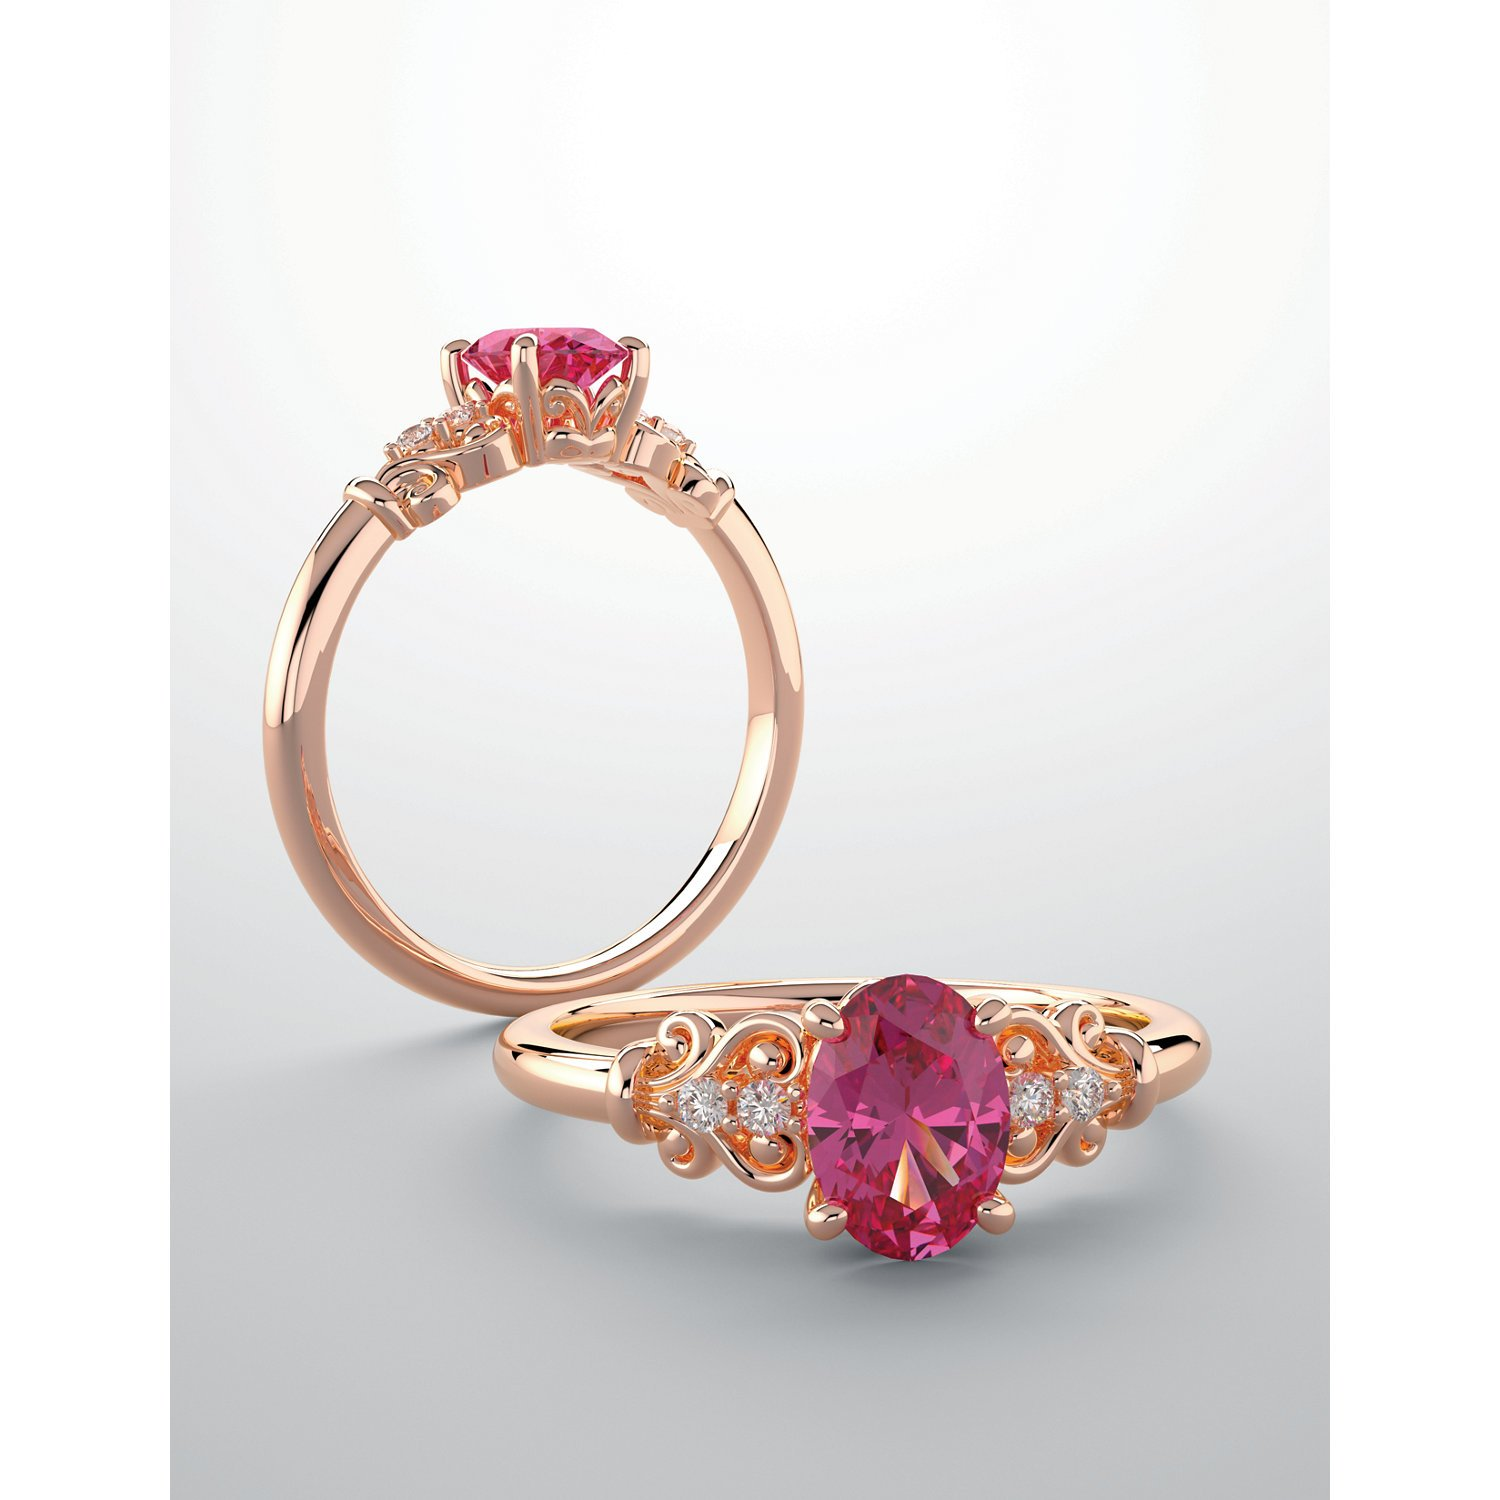 Intelligent Royal Romance Cz Ring Lustrous Surface Other Wedding Jewelry